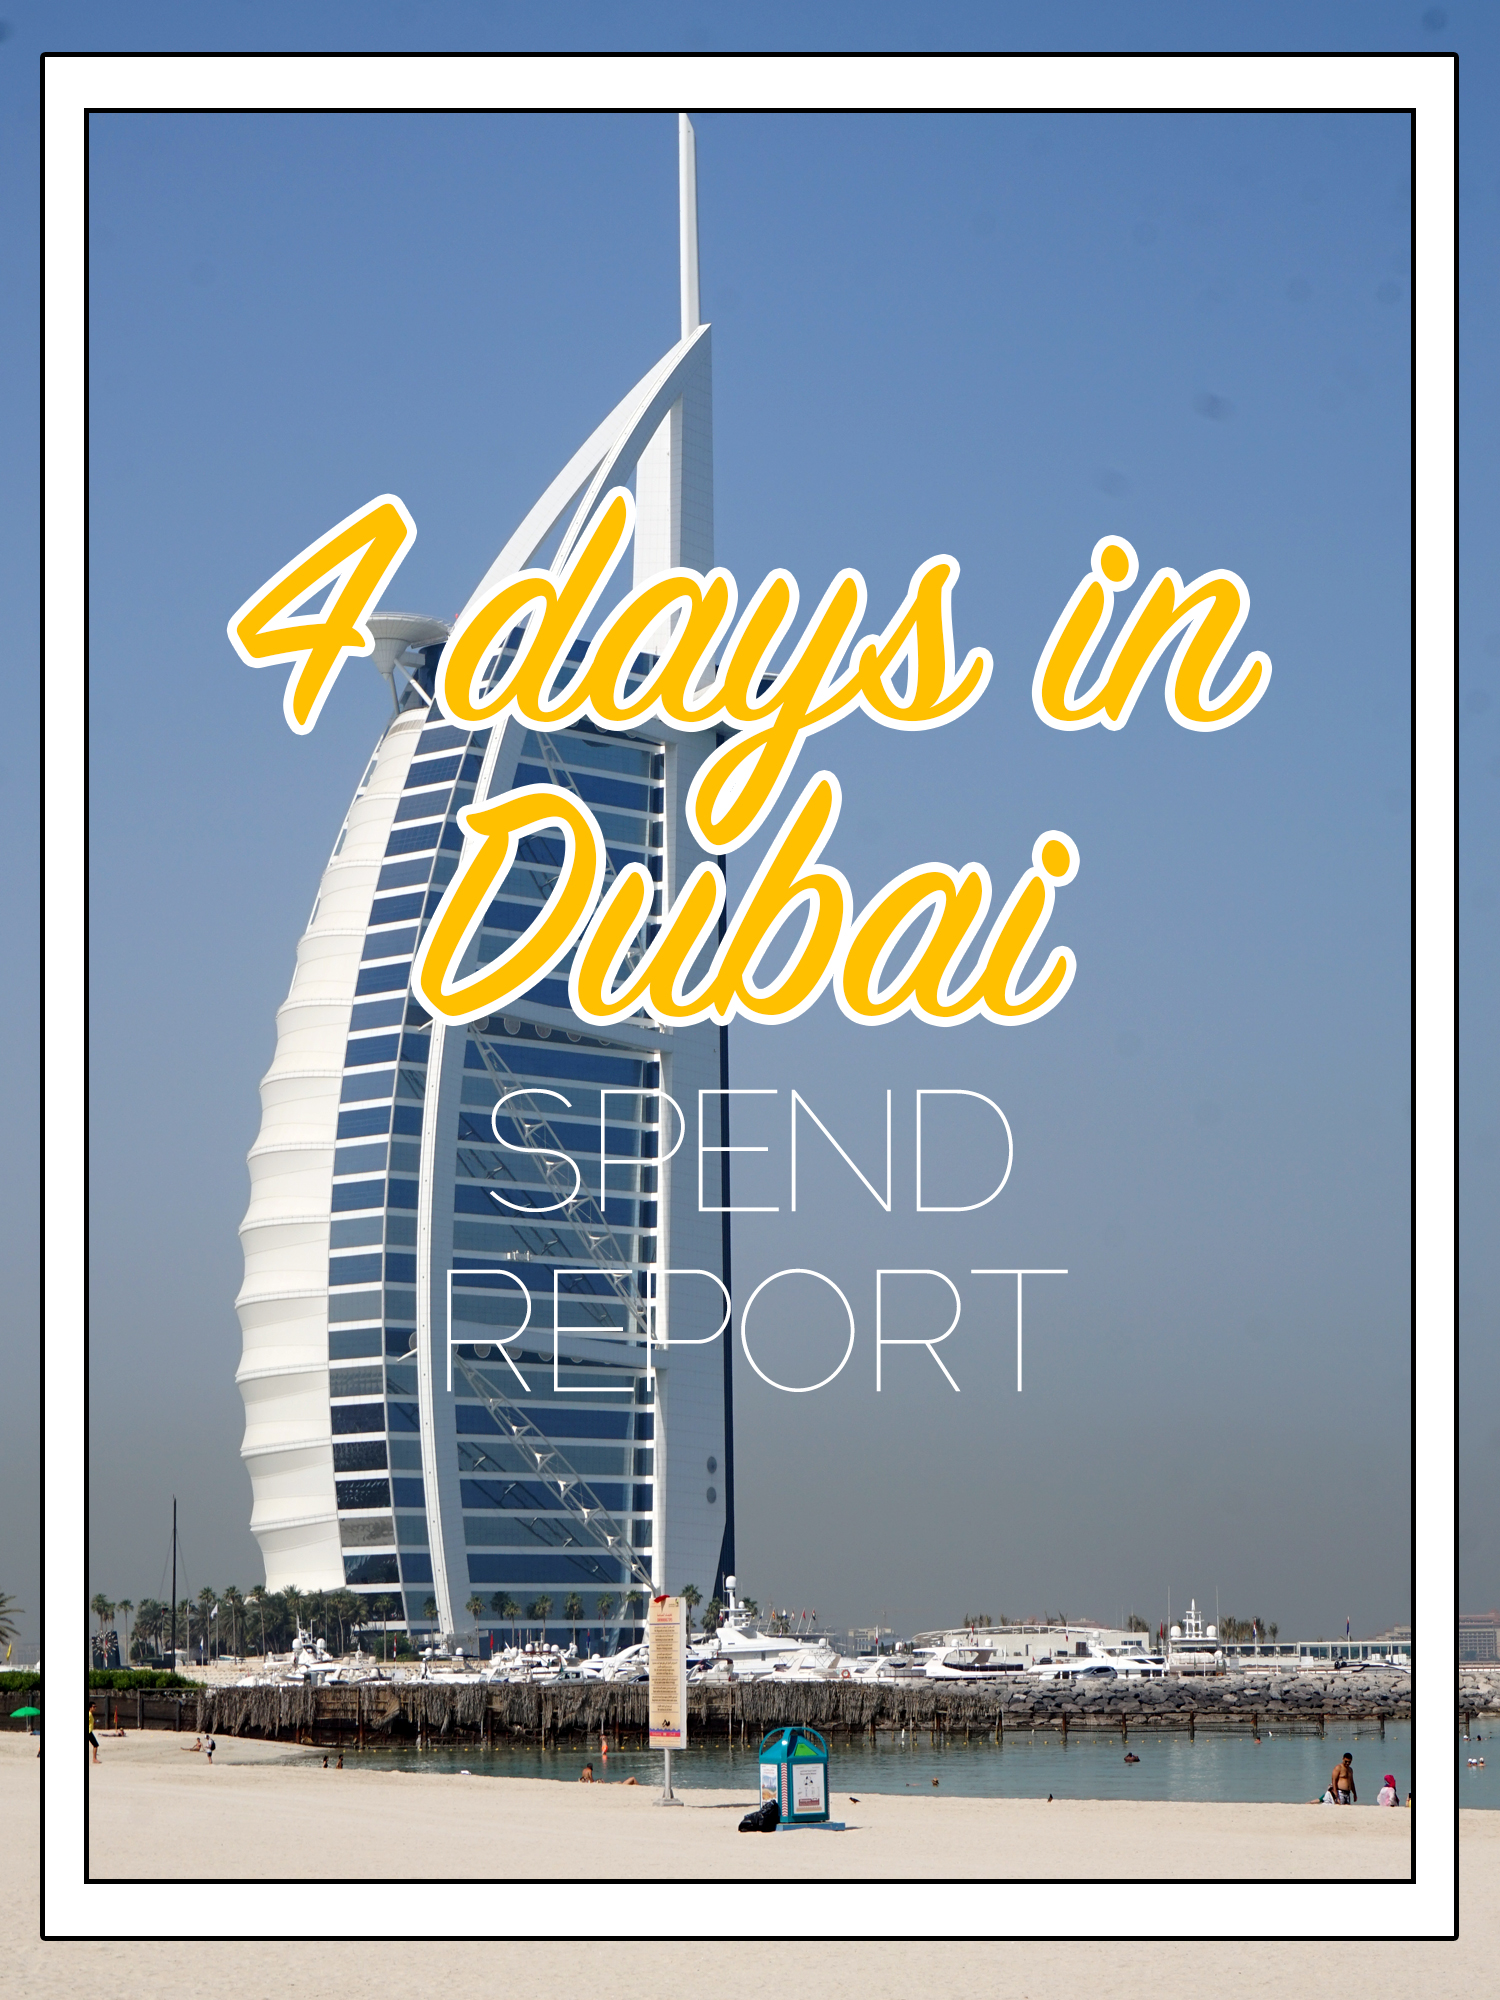 the cost of 4 days in Dubai